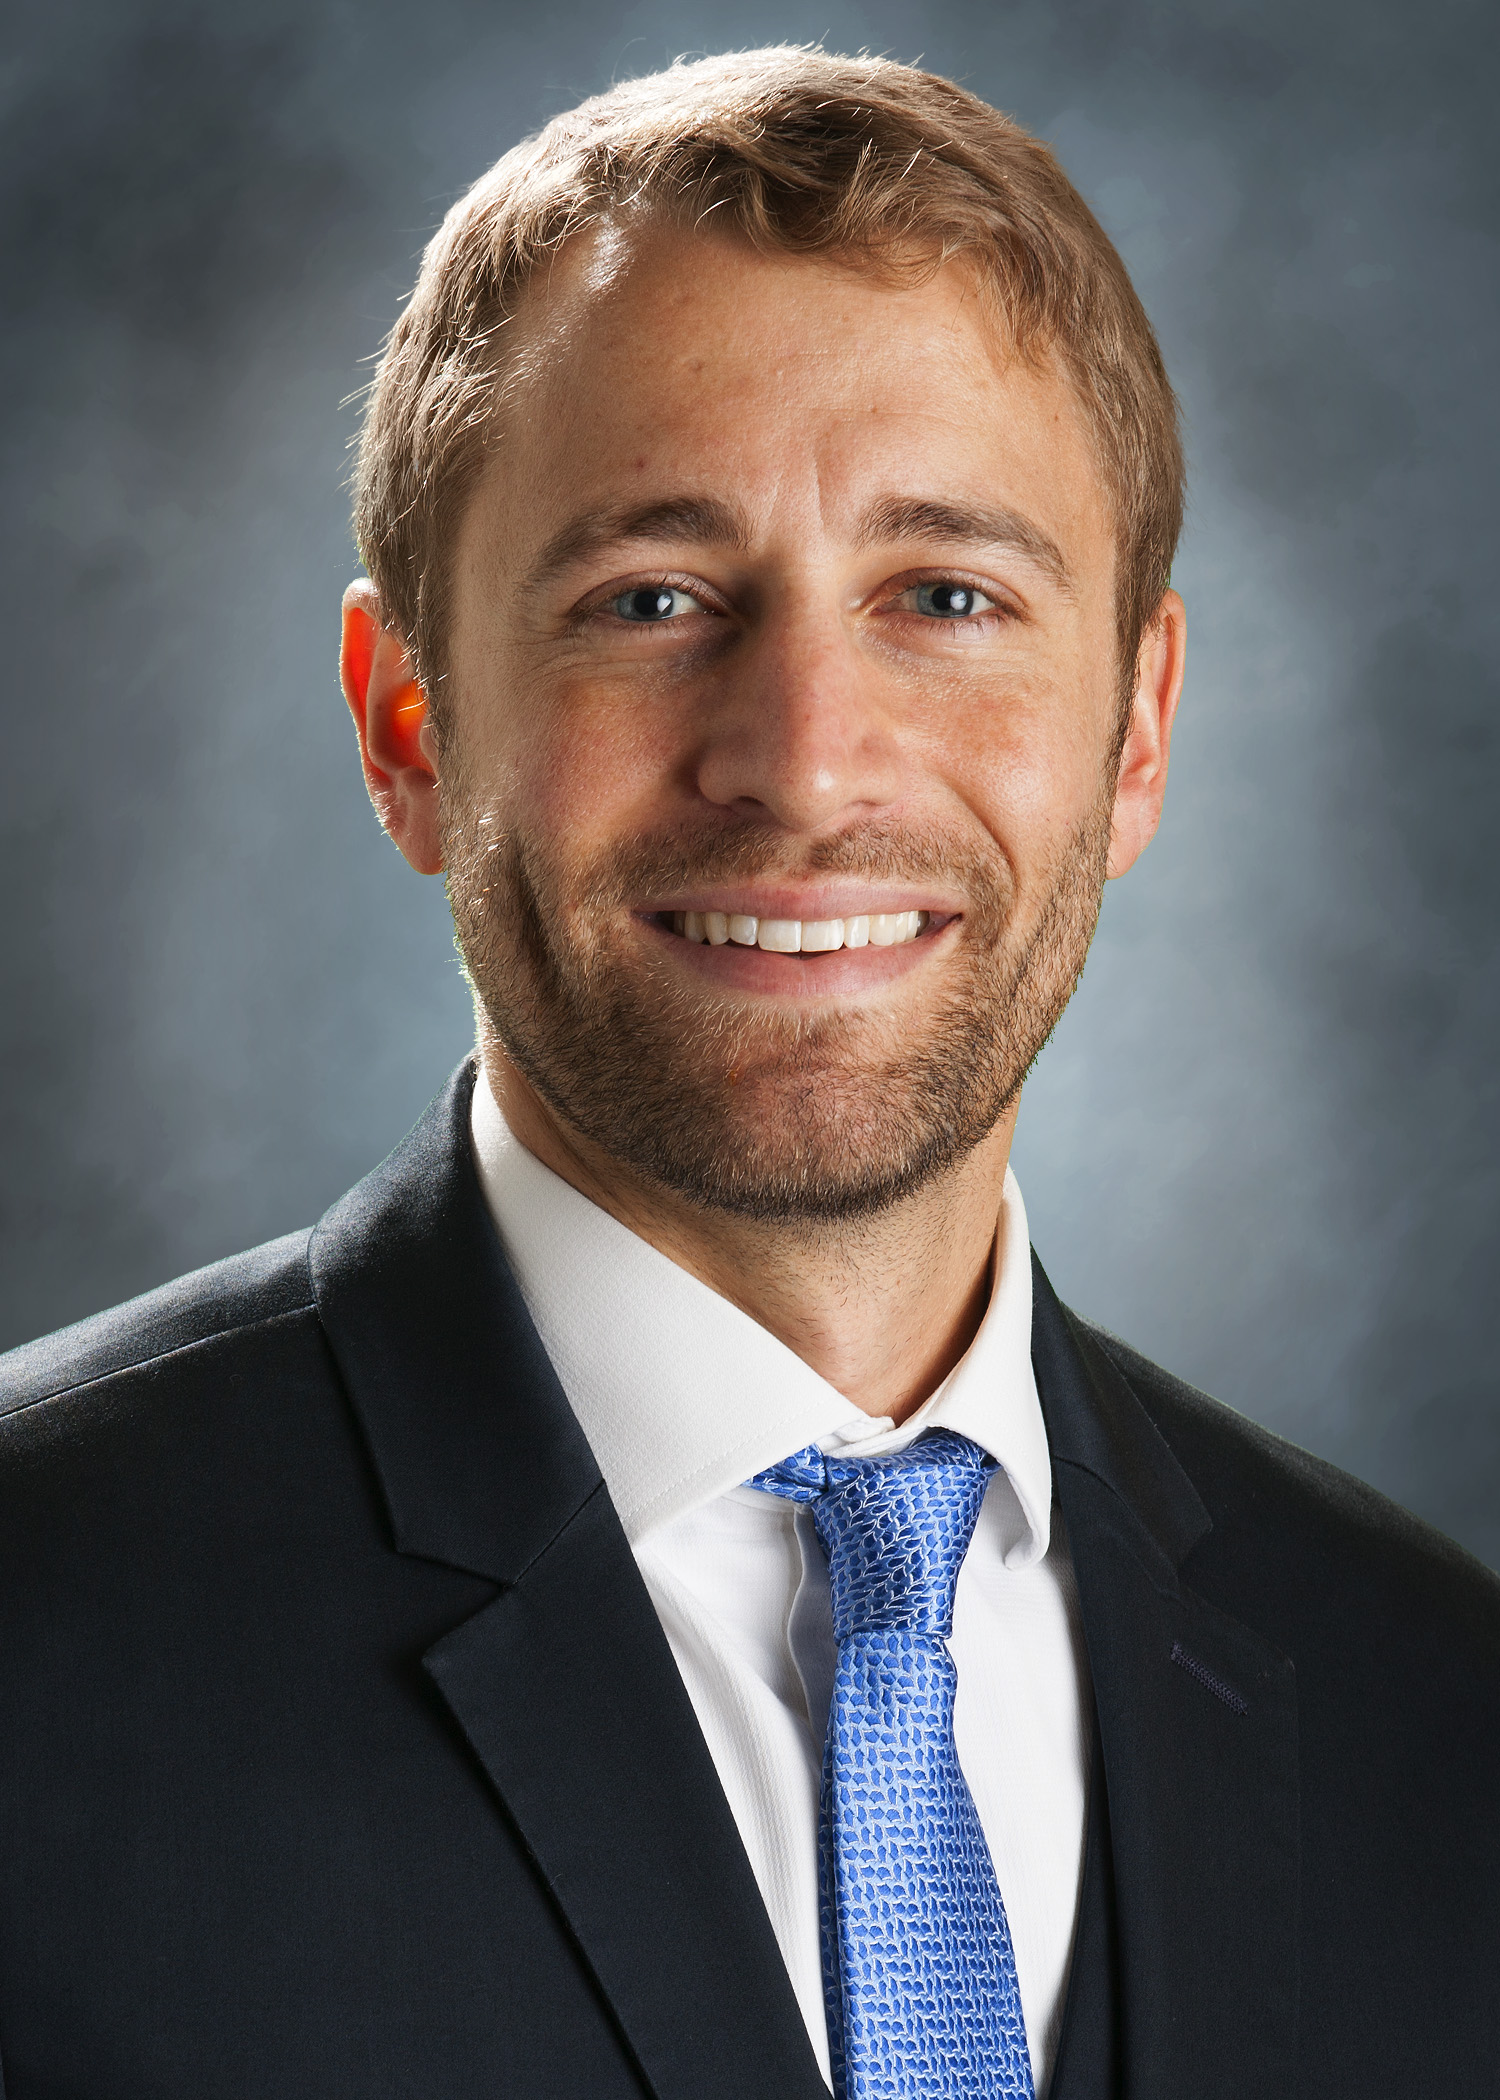 2018 board member bios originally from hickory nc jordan moved to greenville nc when he joined vidant medical center as an administrative fellow in hospital operations 1betcityfo Image collections